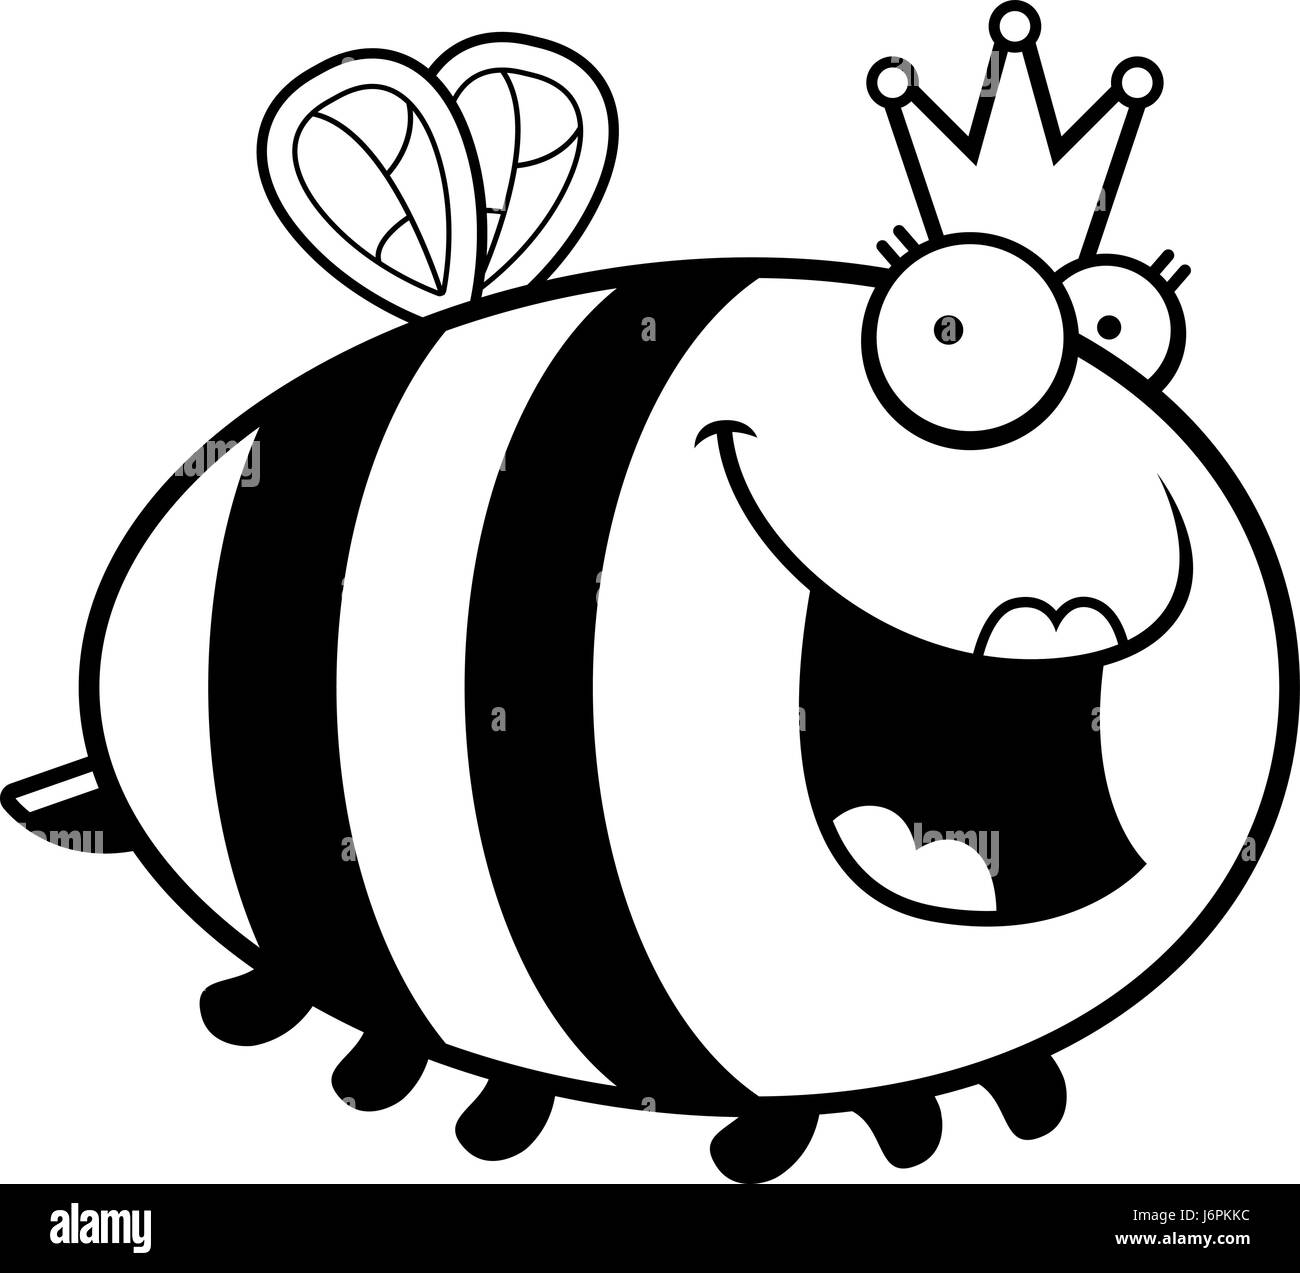 A Cartoon Illustration Of A Queen Bee With A Crown Stock Vector Image Art Alamy Choose from over a million free vectors, clipart graphics, vector art images, design templates, and illustrations created by artists worldwide! https www alamy com stock photo a cartoon illustration of a queen bee with a crown 141869264 html